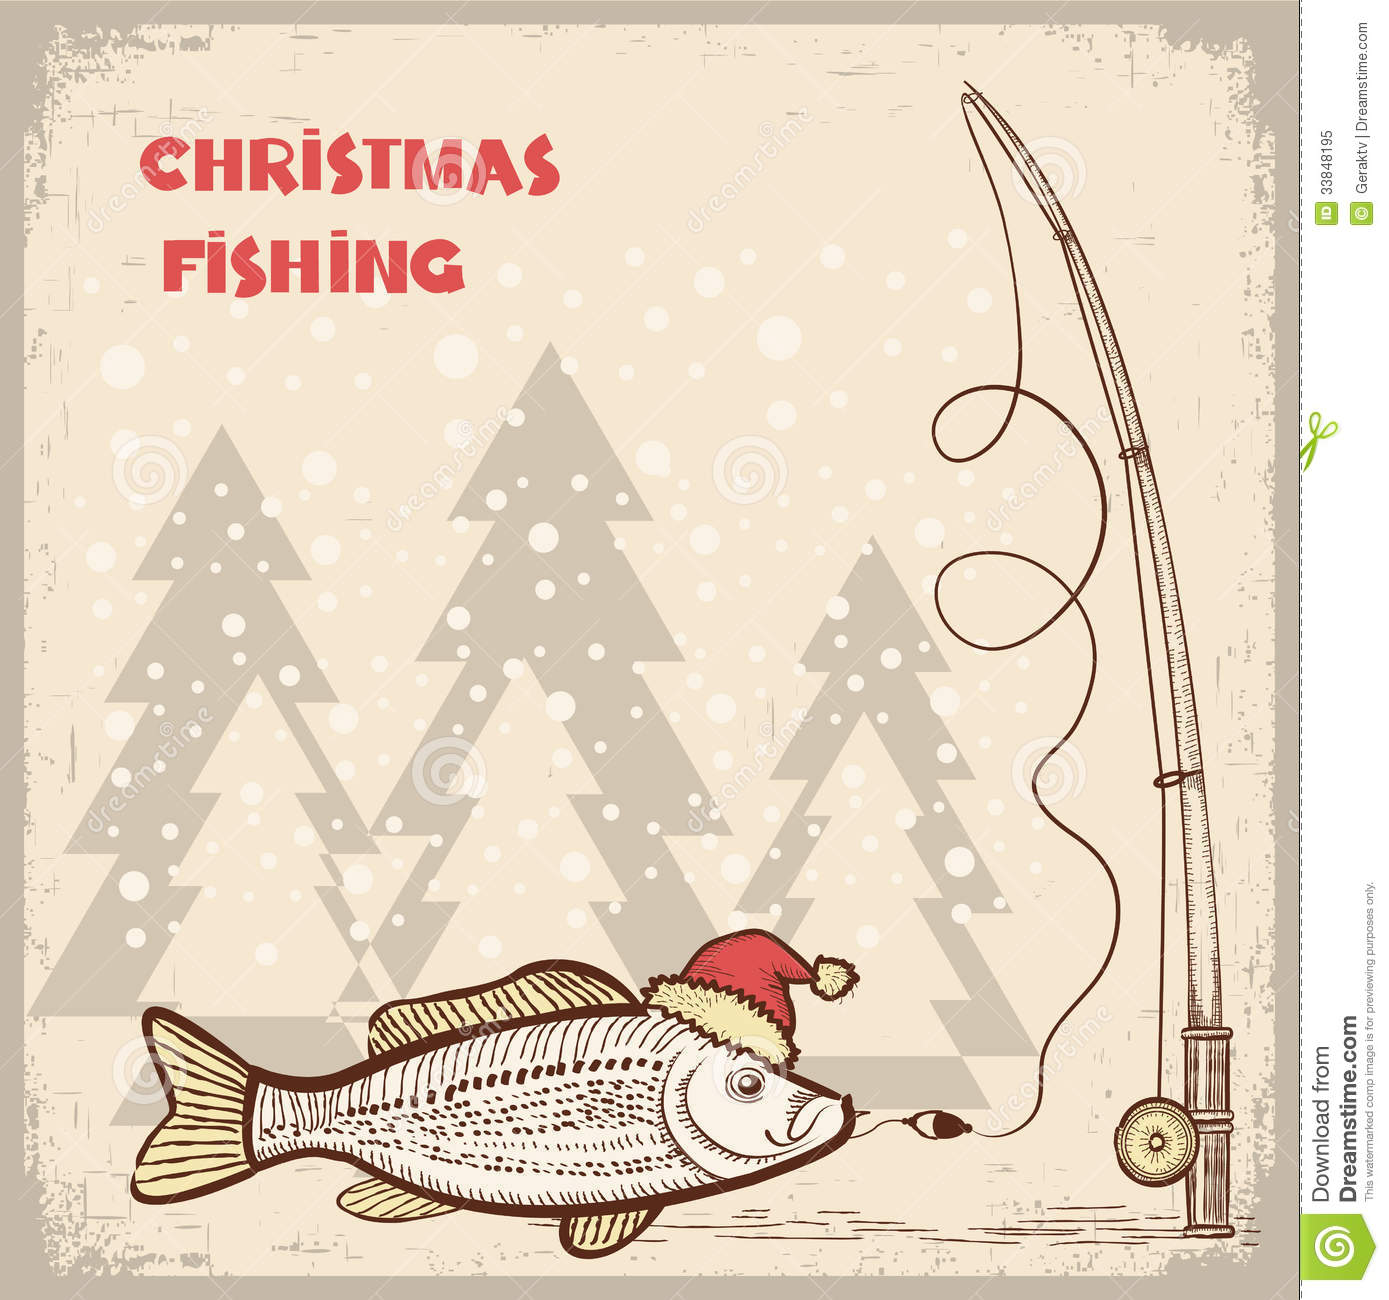 Christmas Fishing Card With Fish In Red Santa Hat. Stock ...